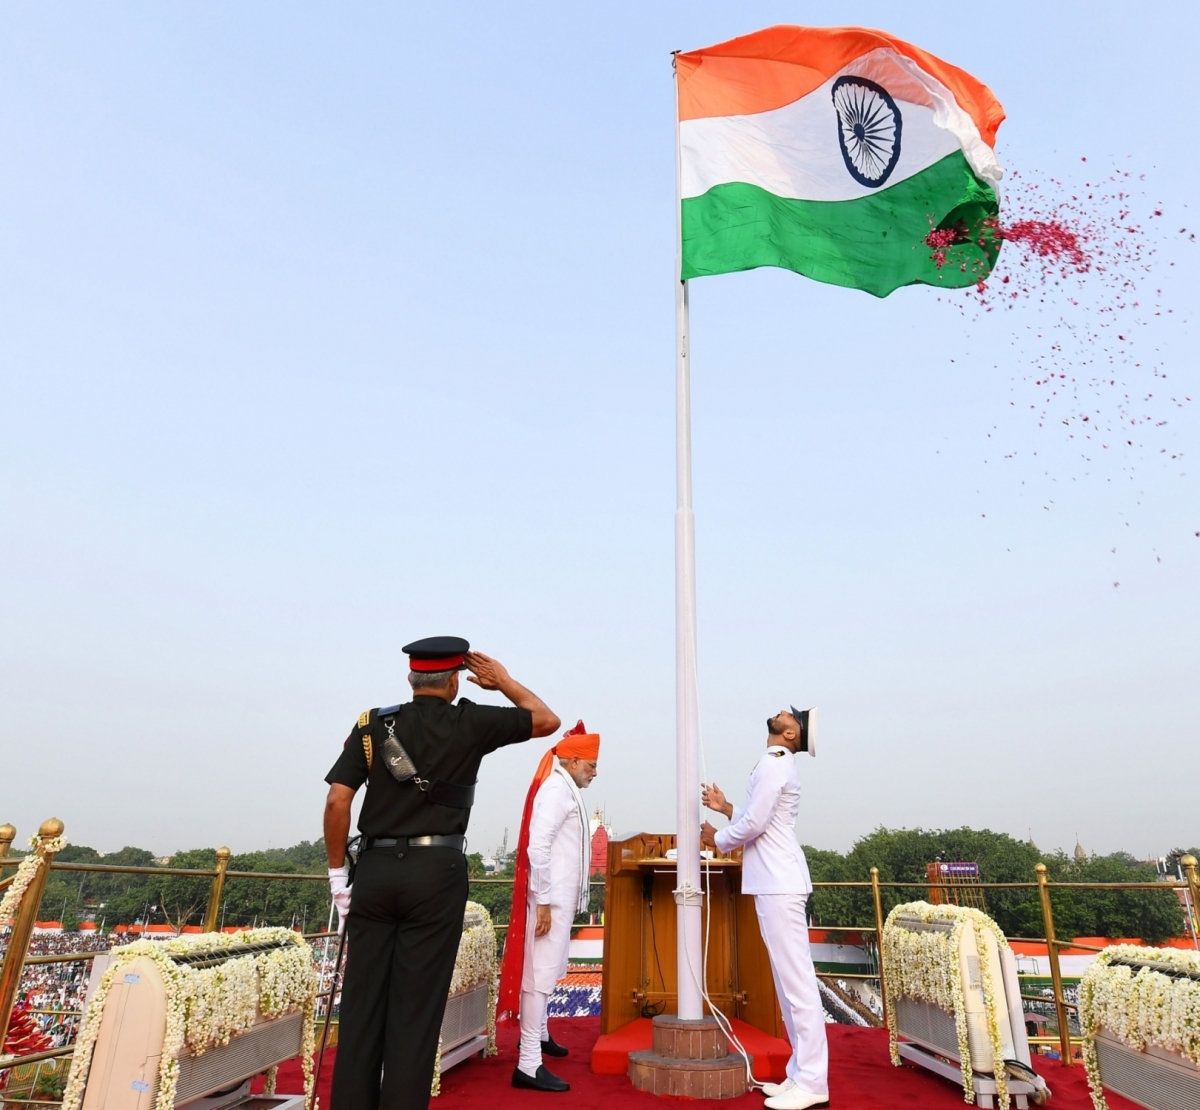 74th Independence Day 2020: History, significance and facts